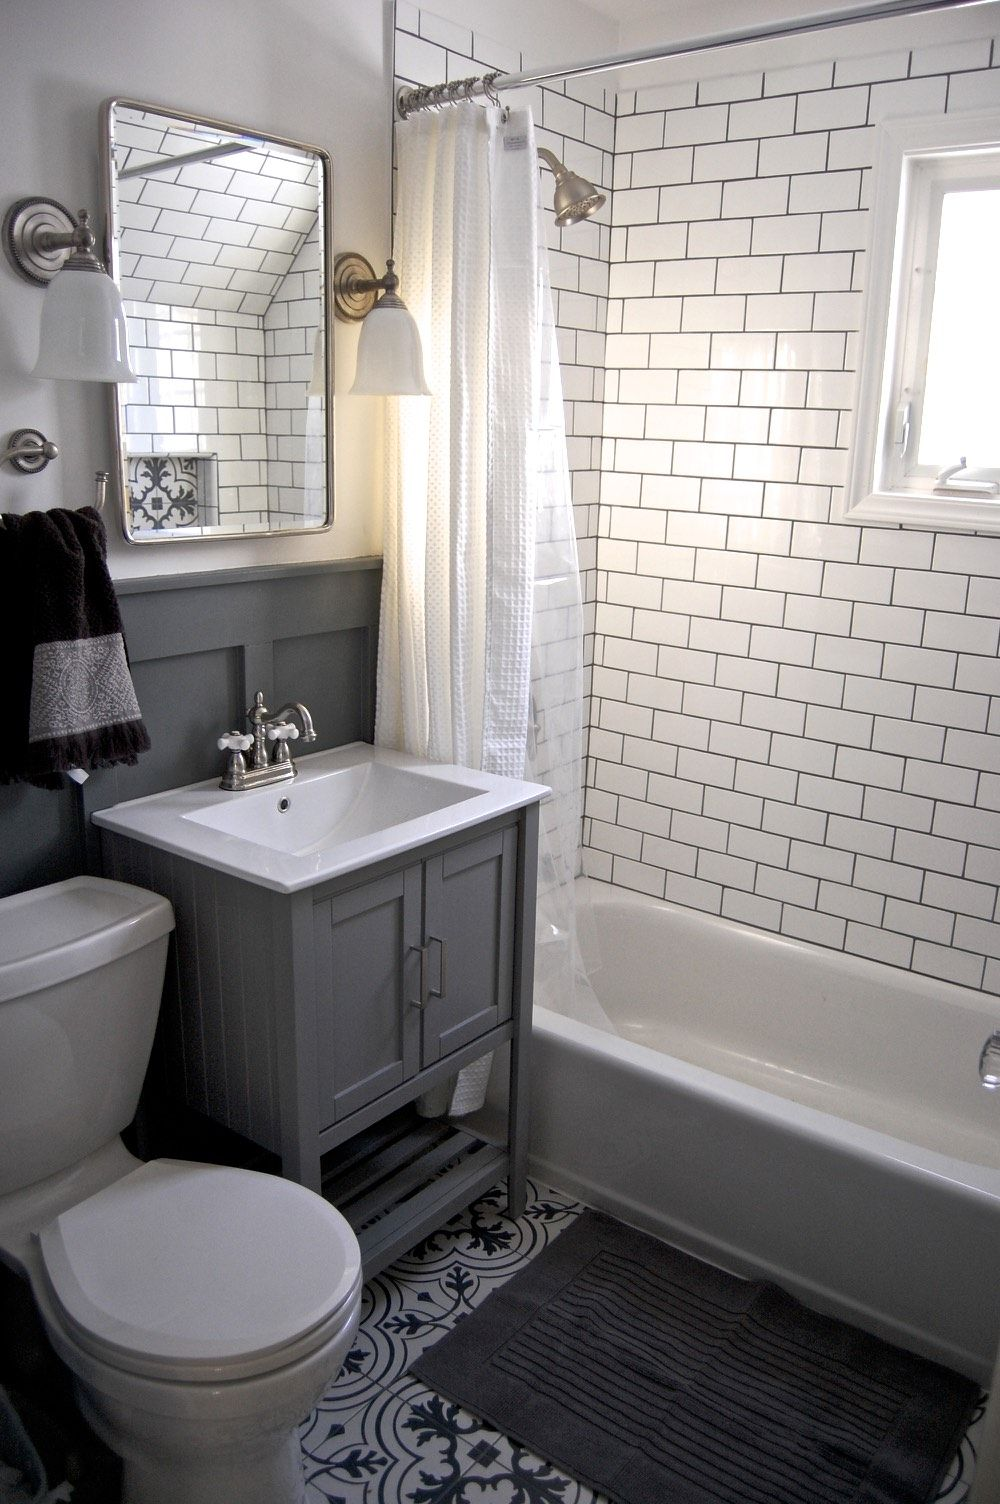 Bathroom Reno Small Bathroom Inspiration Small Bathroom Small